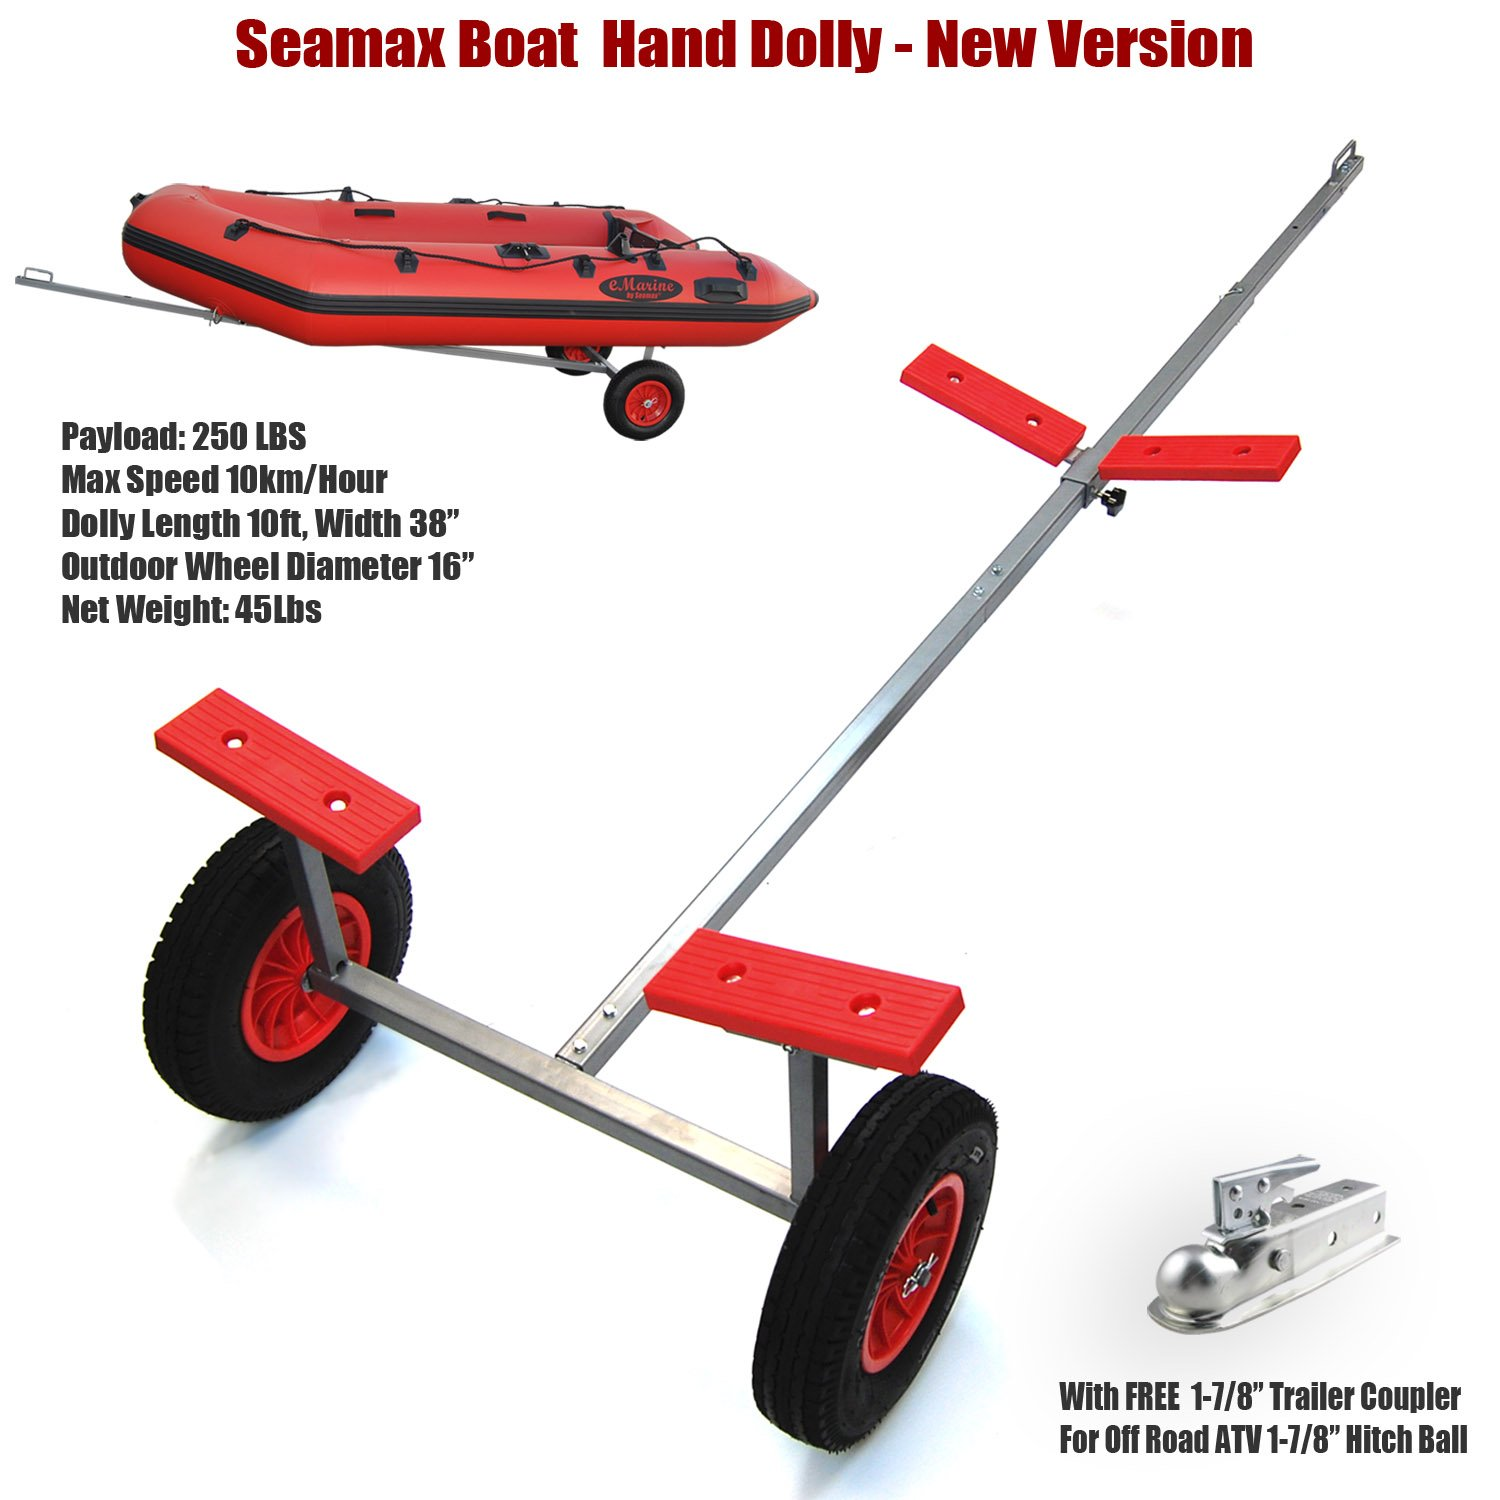 "Seamax Portable Boat Hand Dolly Set with 16"" Wheels, Fully Extended to 10ft Length, Rear Bunks Width 38"" (New Version) by SEAMAX"